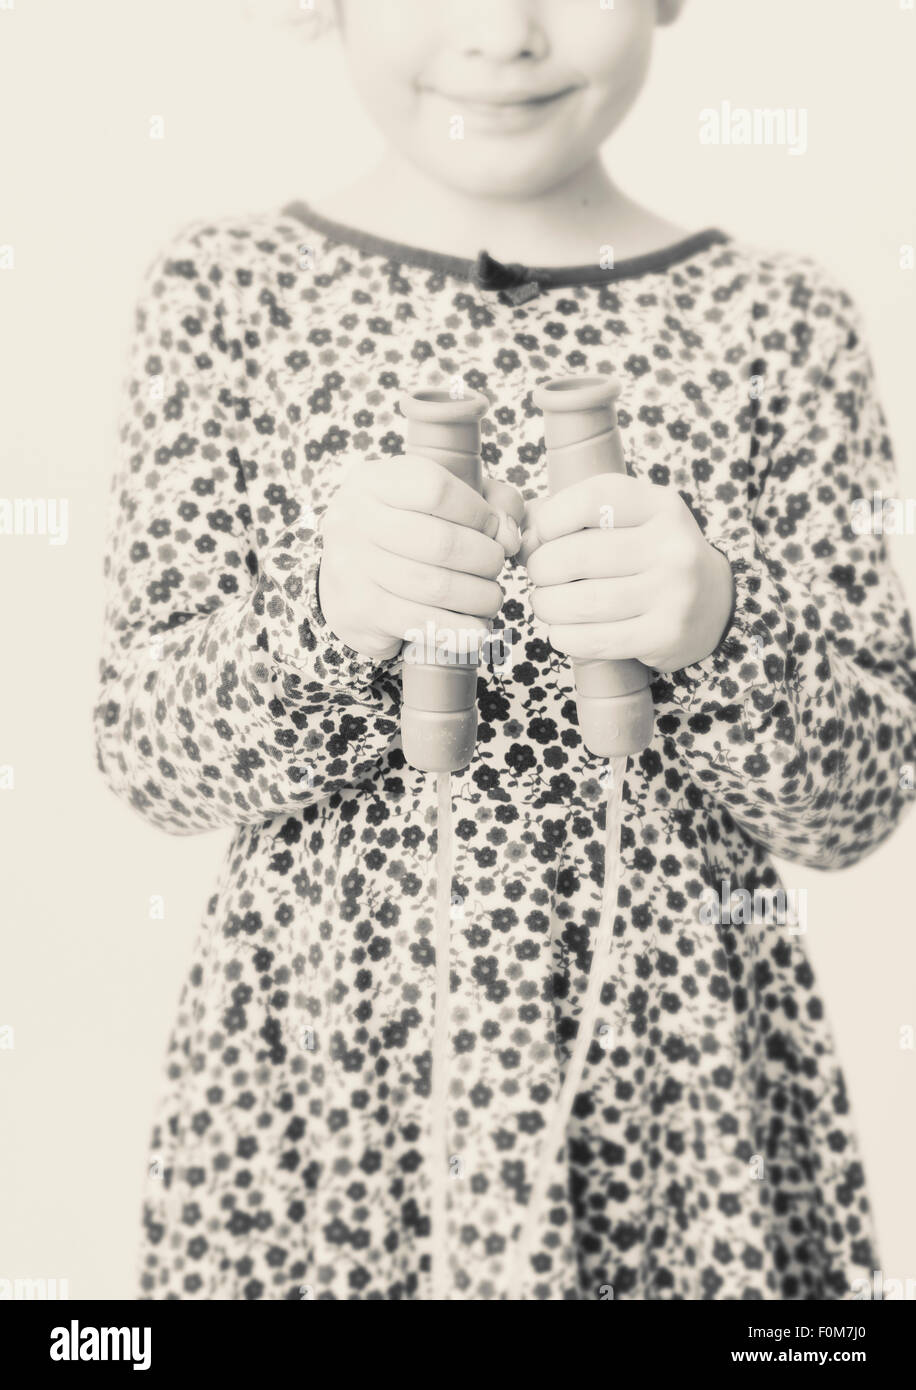 Portrait of little girl in dress with flowers. She is smiling and holding the handles of a jump rope. - Stock Image